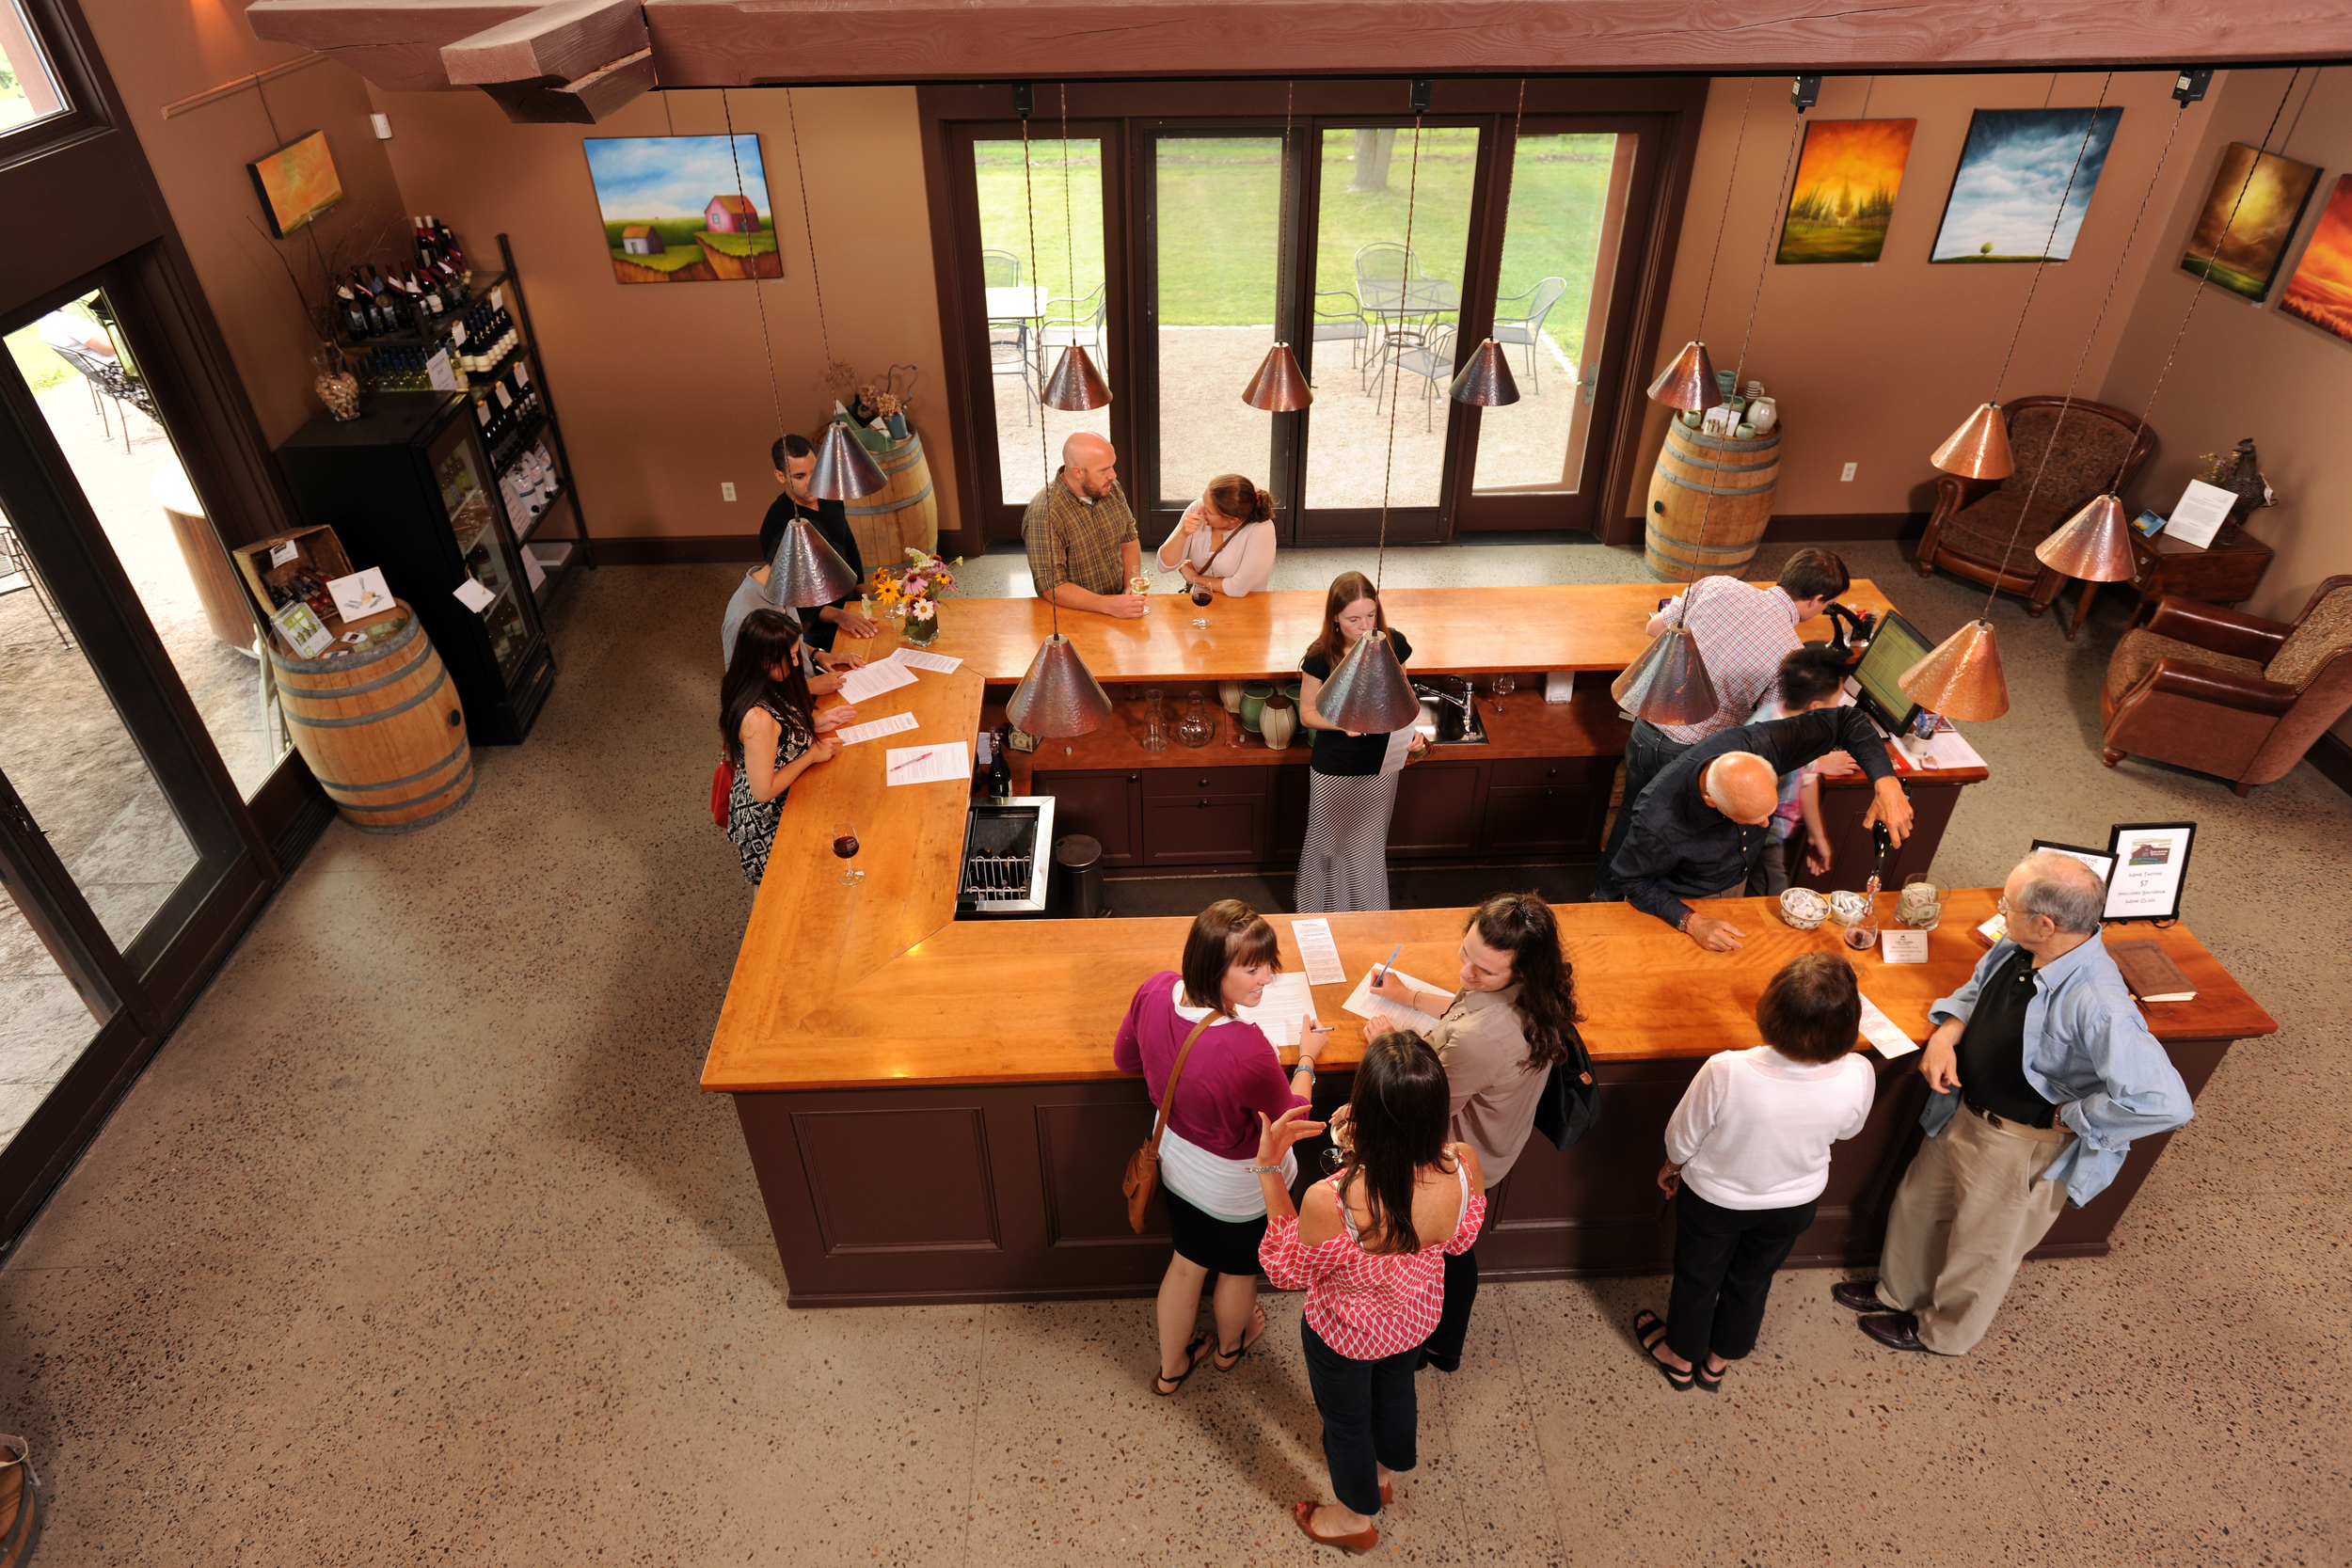 Overlooking bar in tasting room